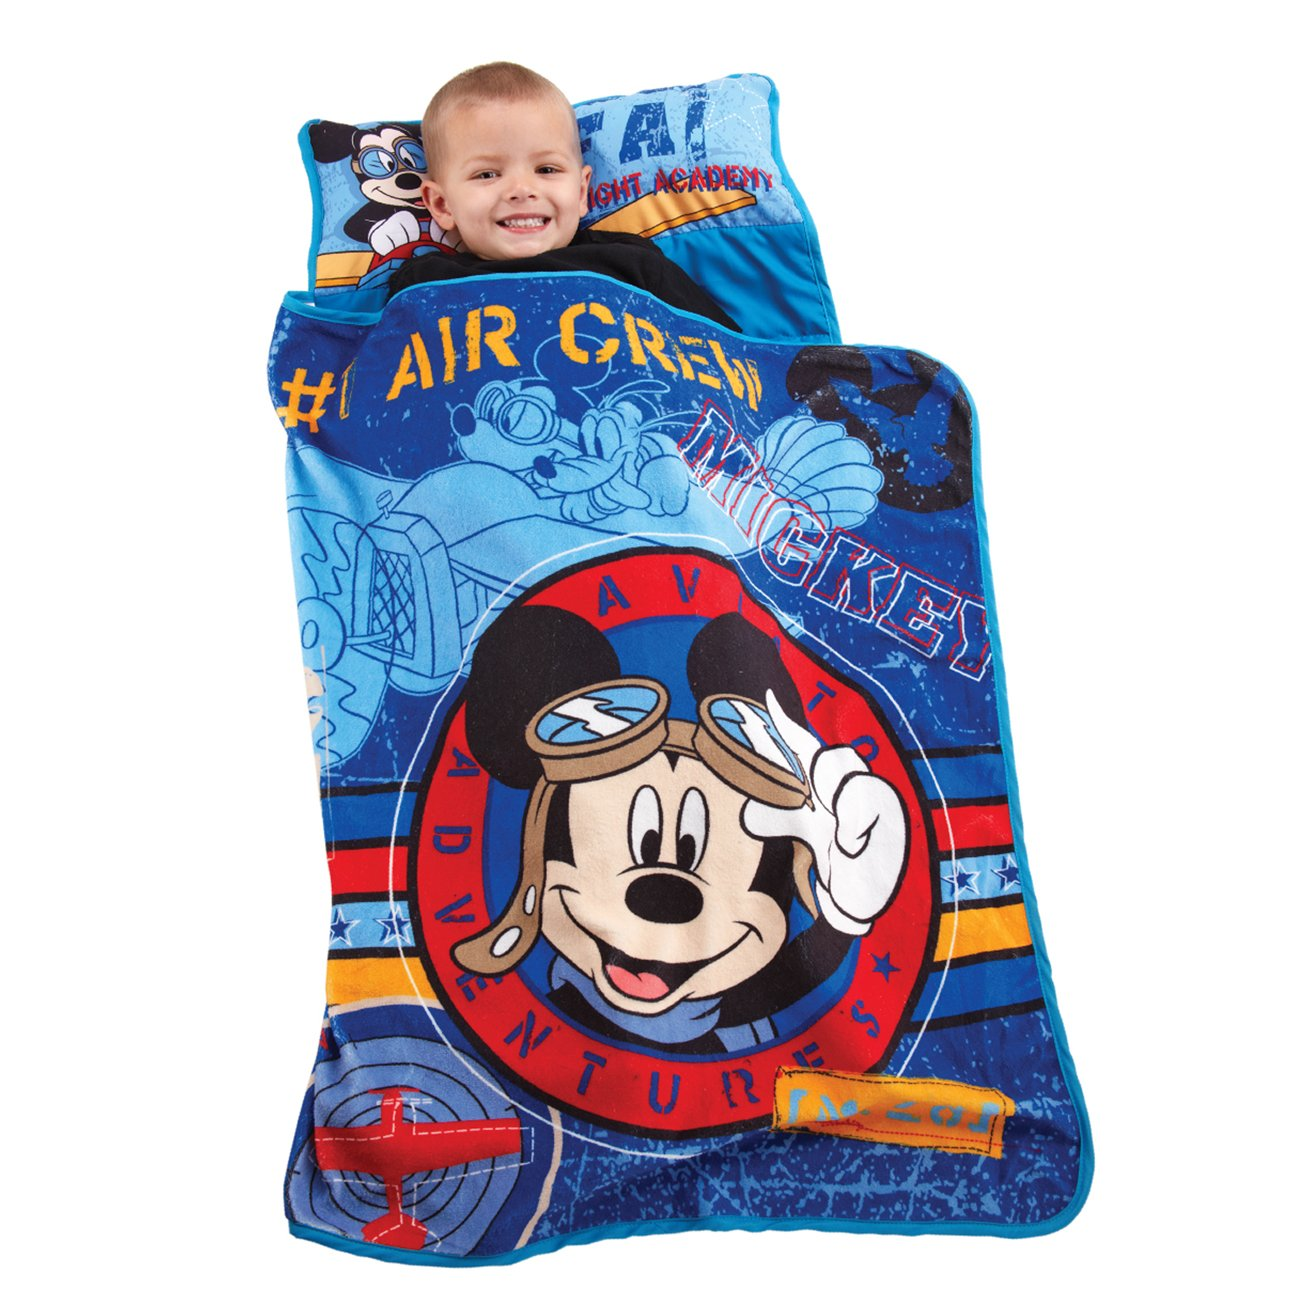 Disney Mickey's Toddler Rolled Nap Mat, Flight Academy